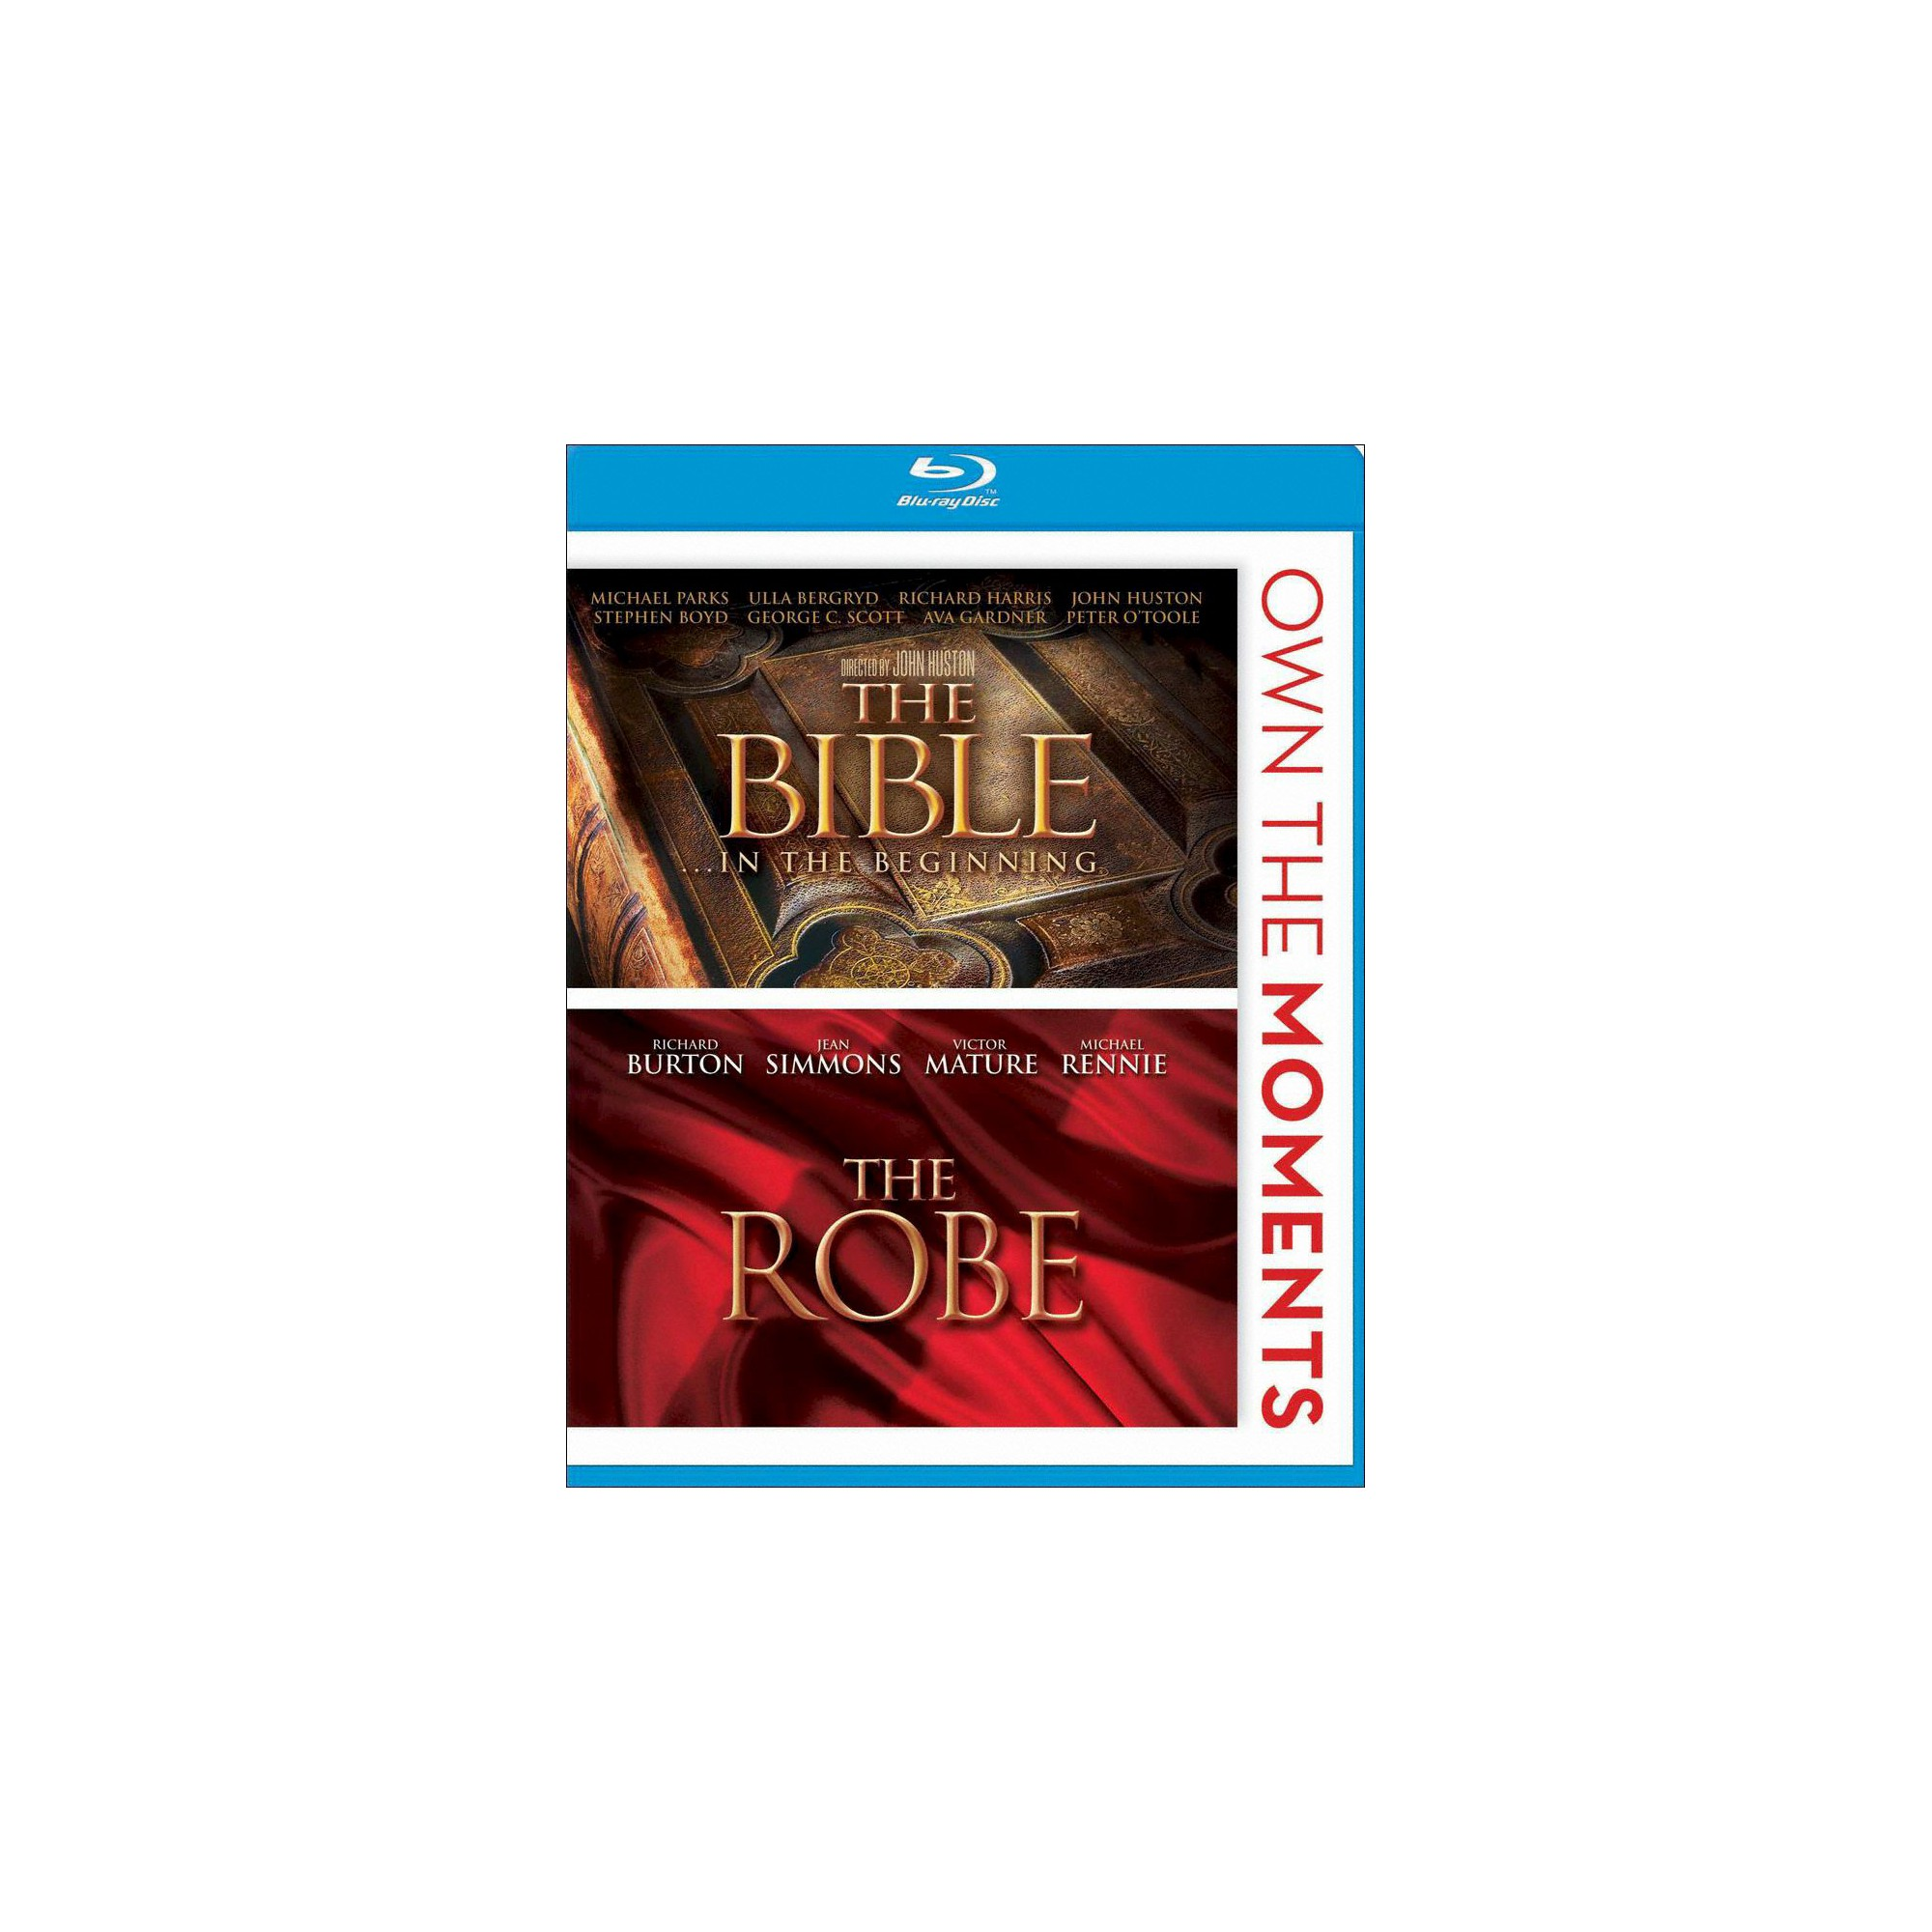 The Bible: In the Beginning/The Robe (2 Discs) (Blu-ray)